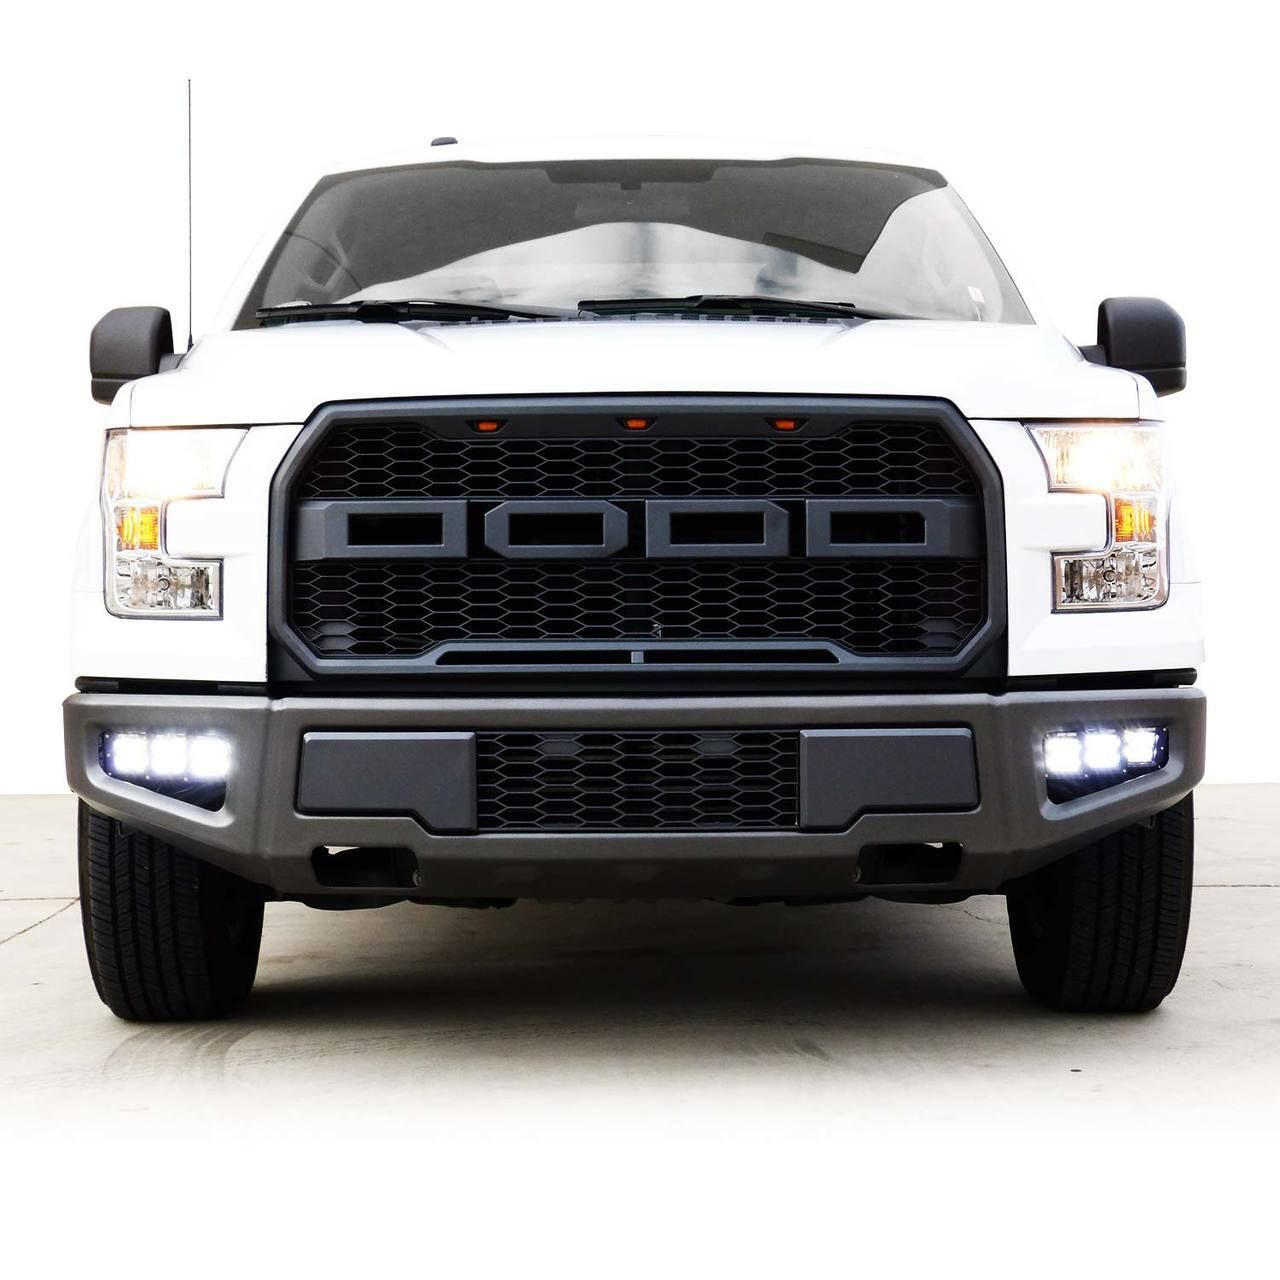 Raptor Style Replacement Front Bumper With 6x Led Fog Lights For F150 2015 2017 Genssi Led Fog Lights F150 Bumpers